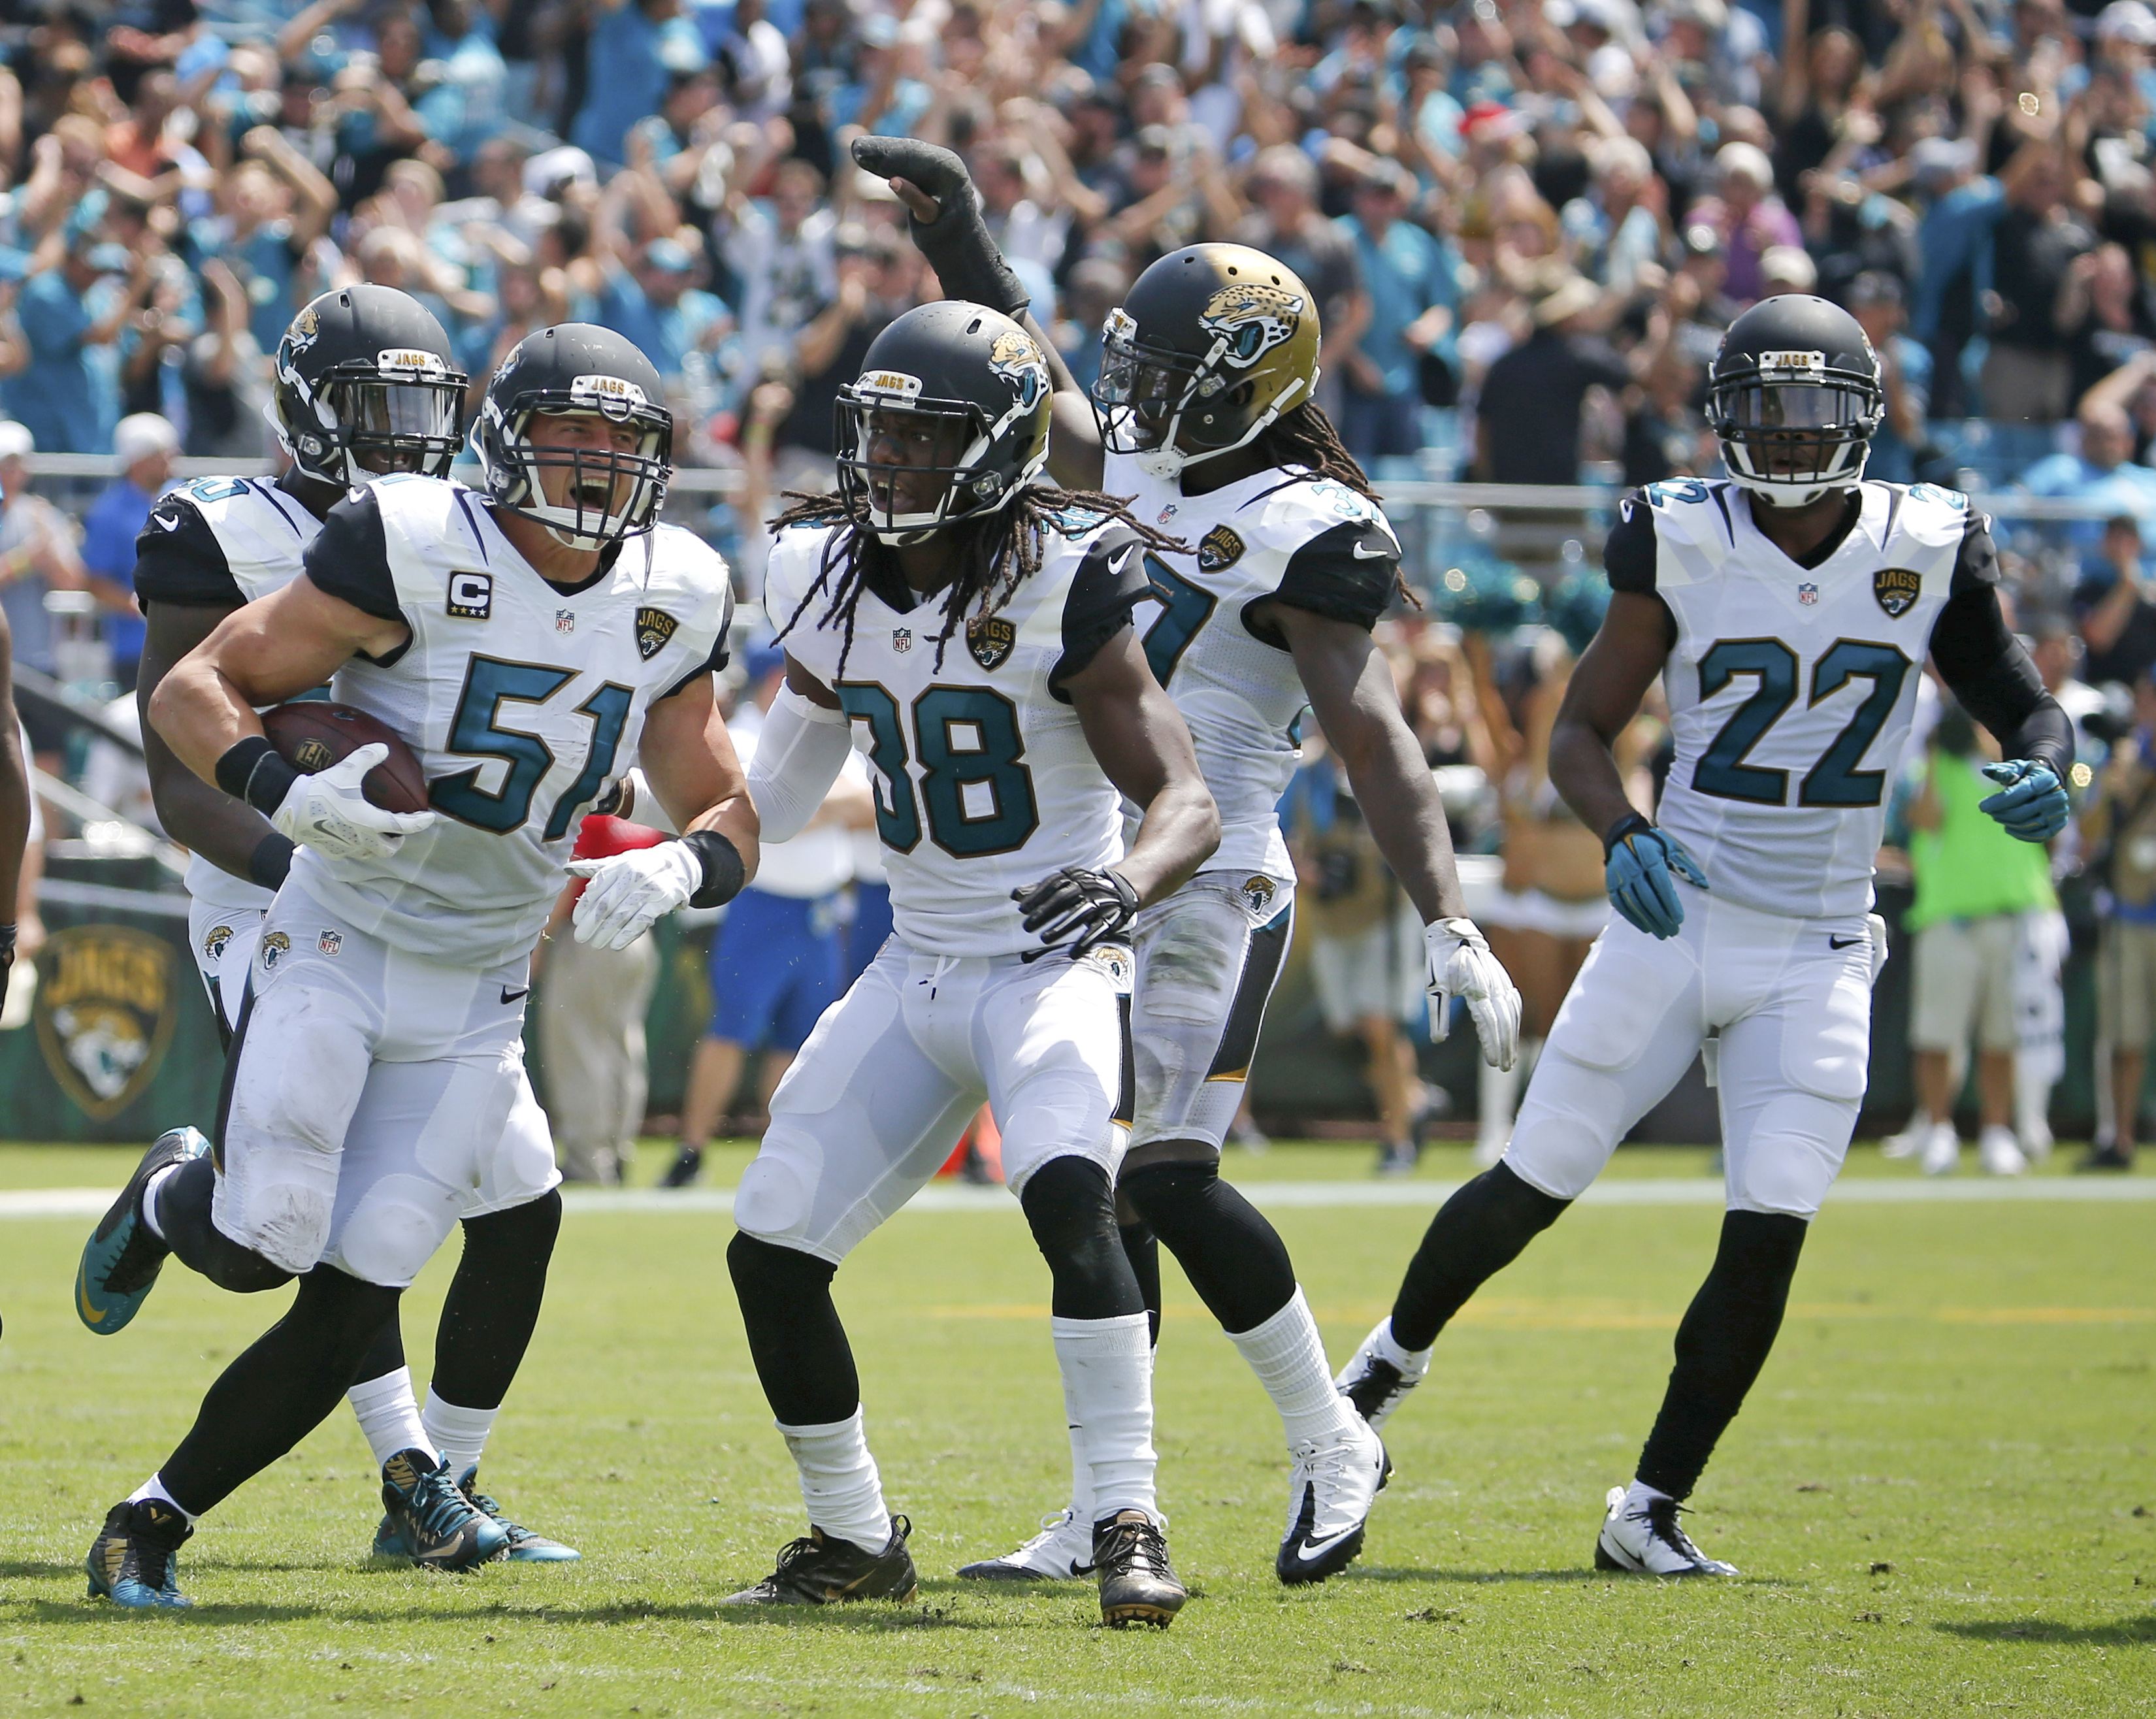 Jacksonville Jaguars middle linebacker Paul Posluszny (51) celebrates an interception against the Carolina Panthers with teammates, including Sergio Brown (38) and cornerback Aaron Colvin (22), during the first half of an NFL football game in Jacksonville